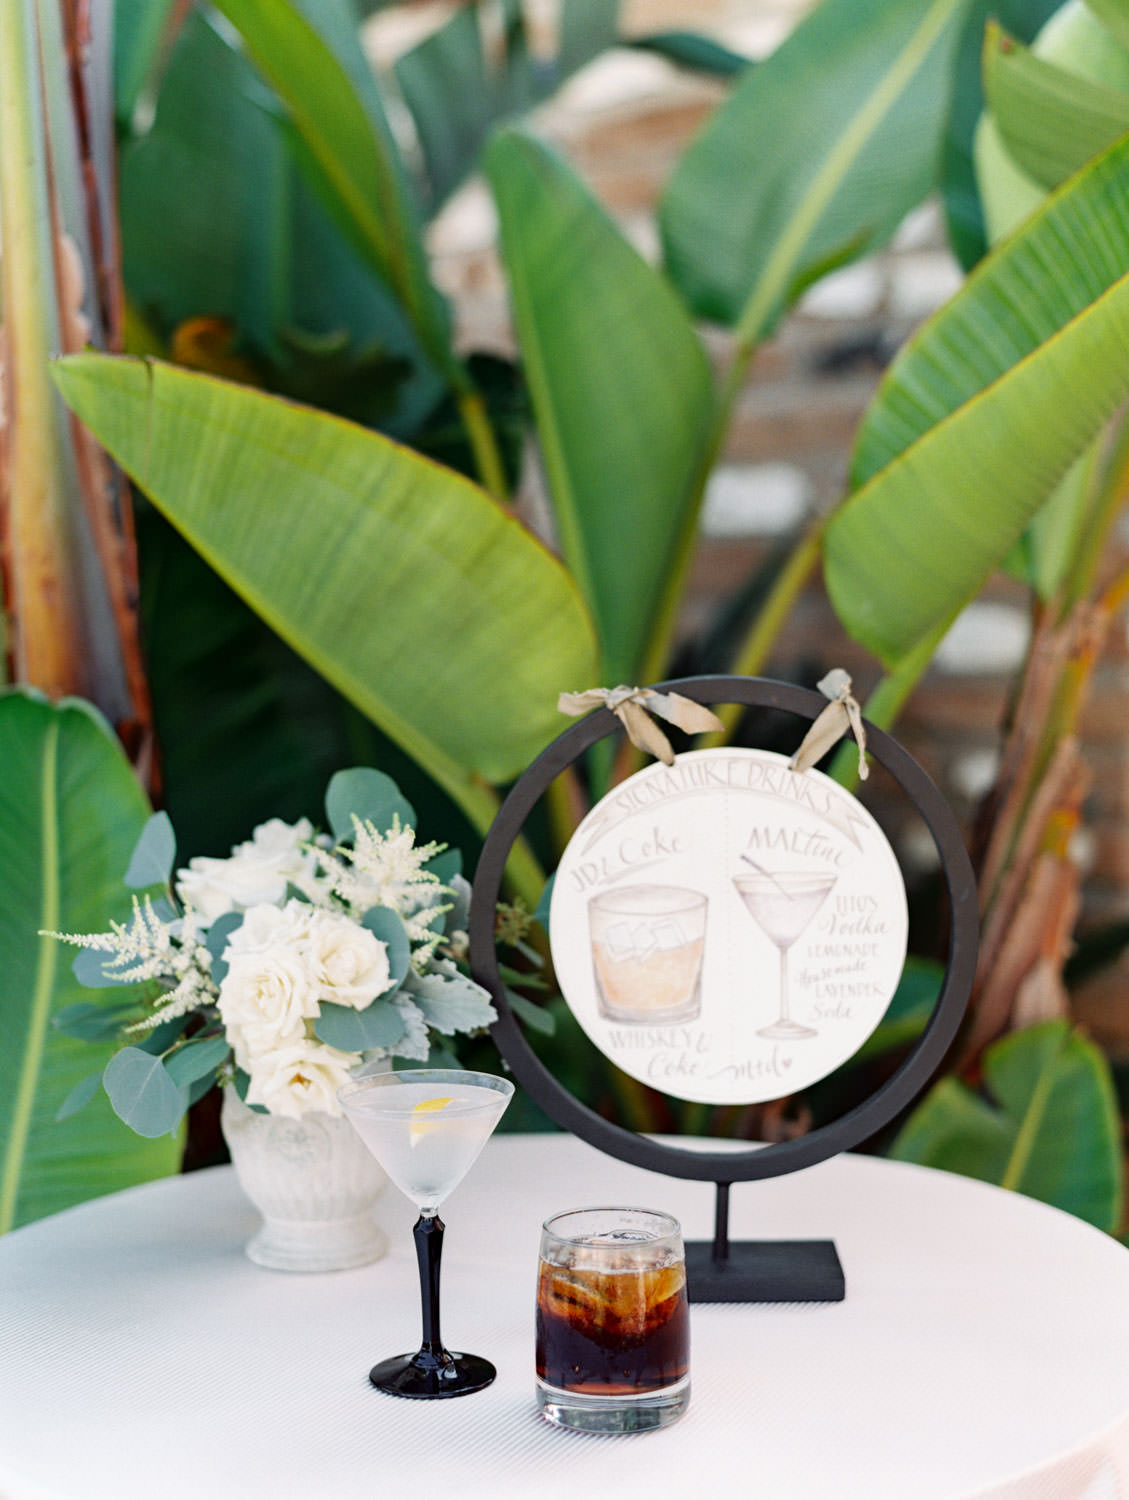 Round suspended cocktail menu color pencil sketch with the real life drinks in front. Whiskey and coke and lemonade martini with lavender. Estancia La Jolla wedding shot on film by Cavin Elizabeth Photography